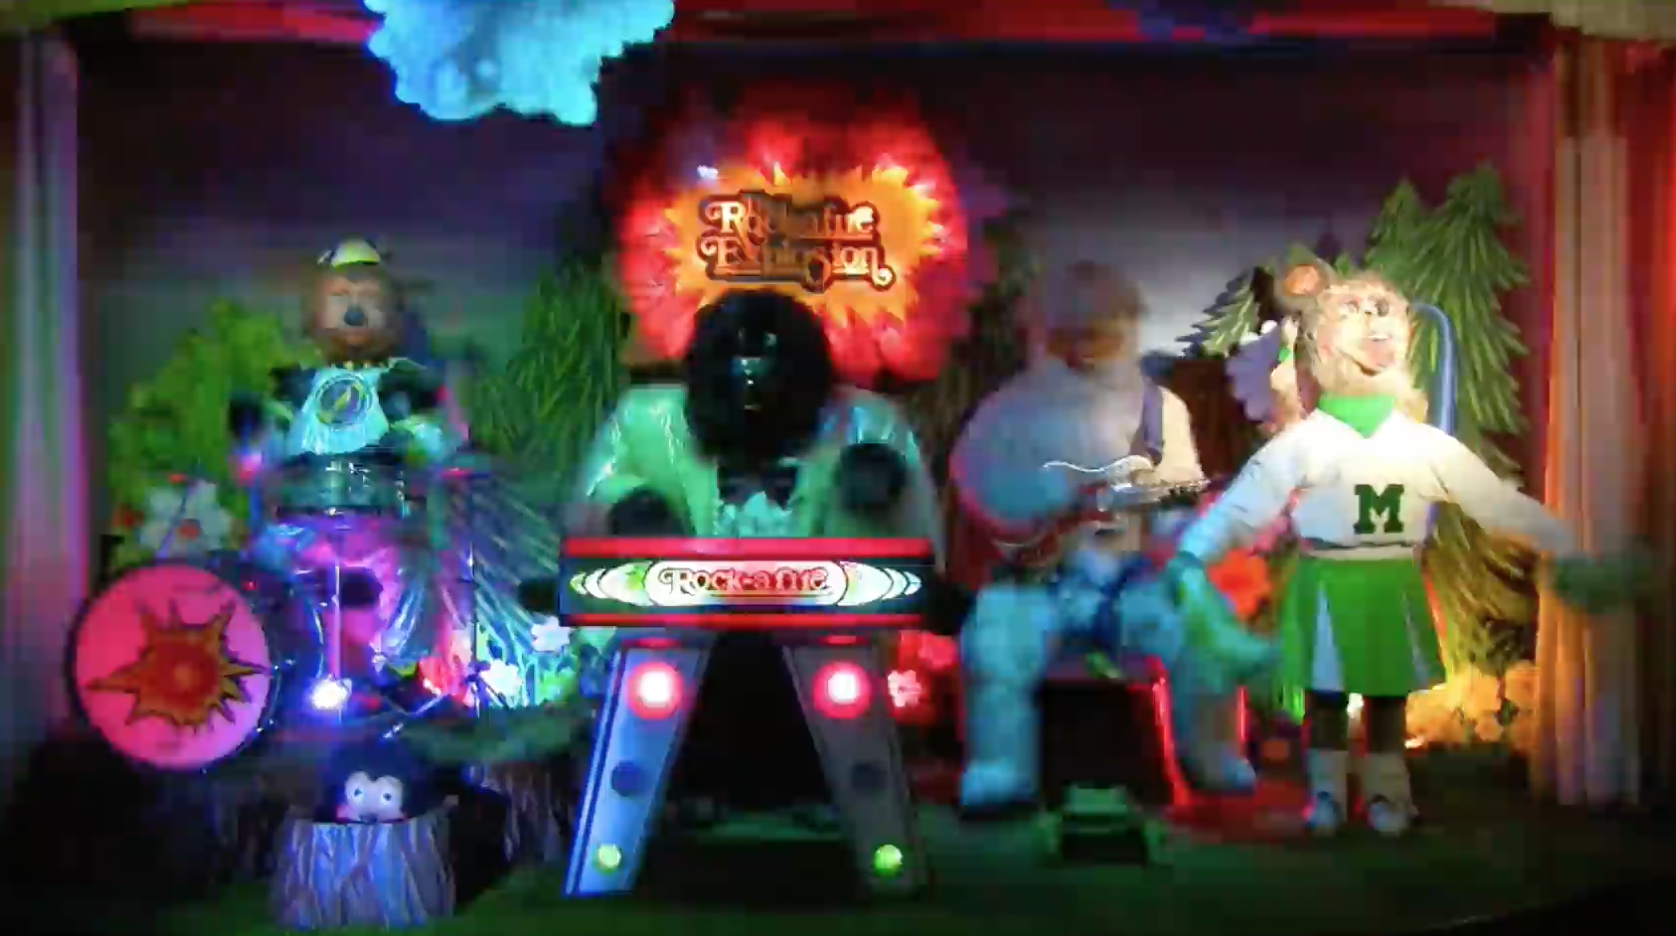 Rock-afire Explosion perform Firework!